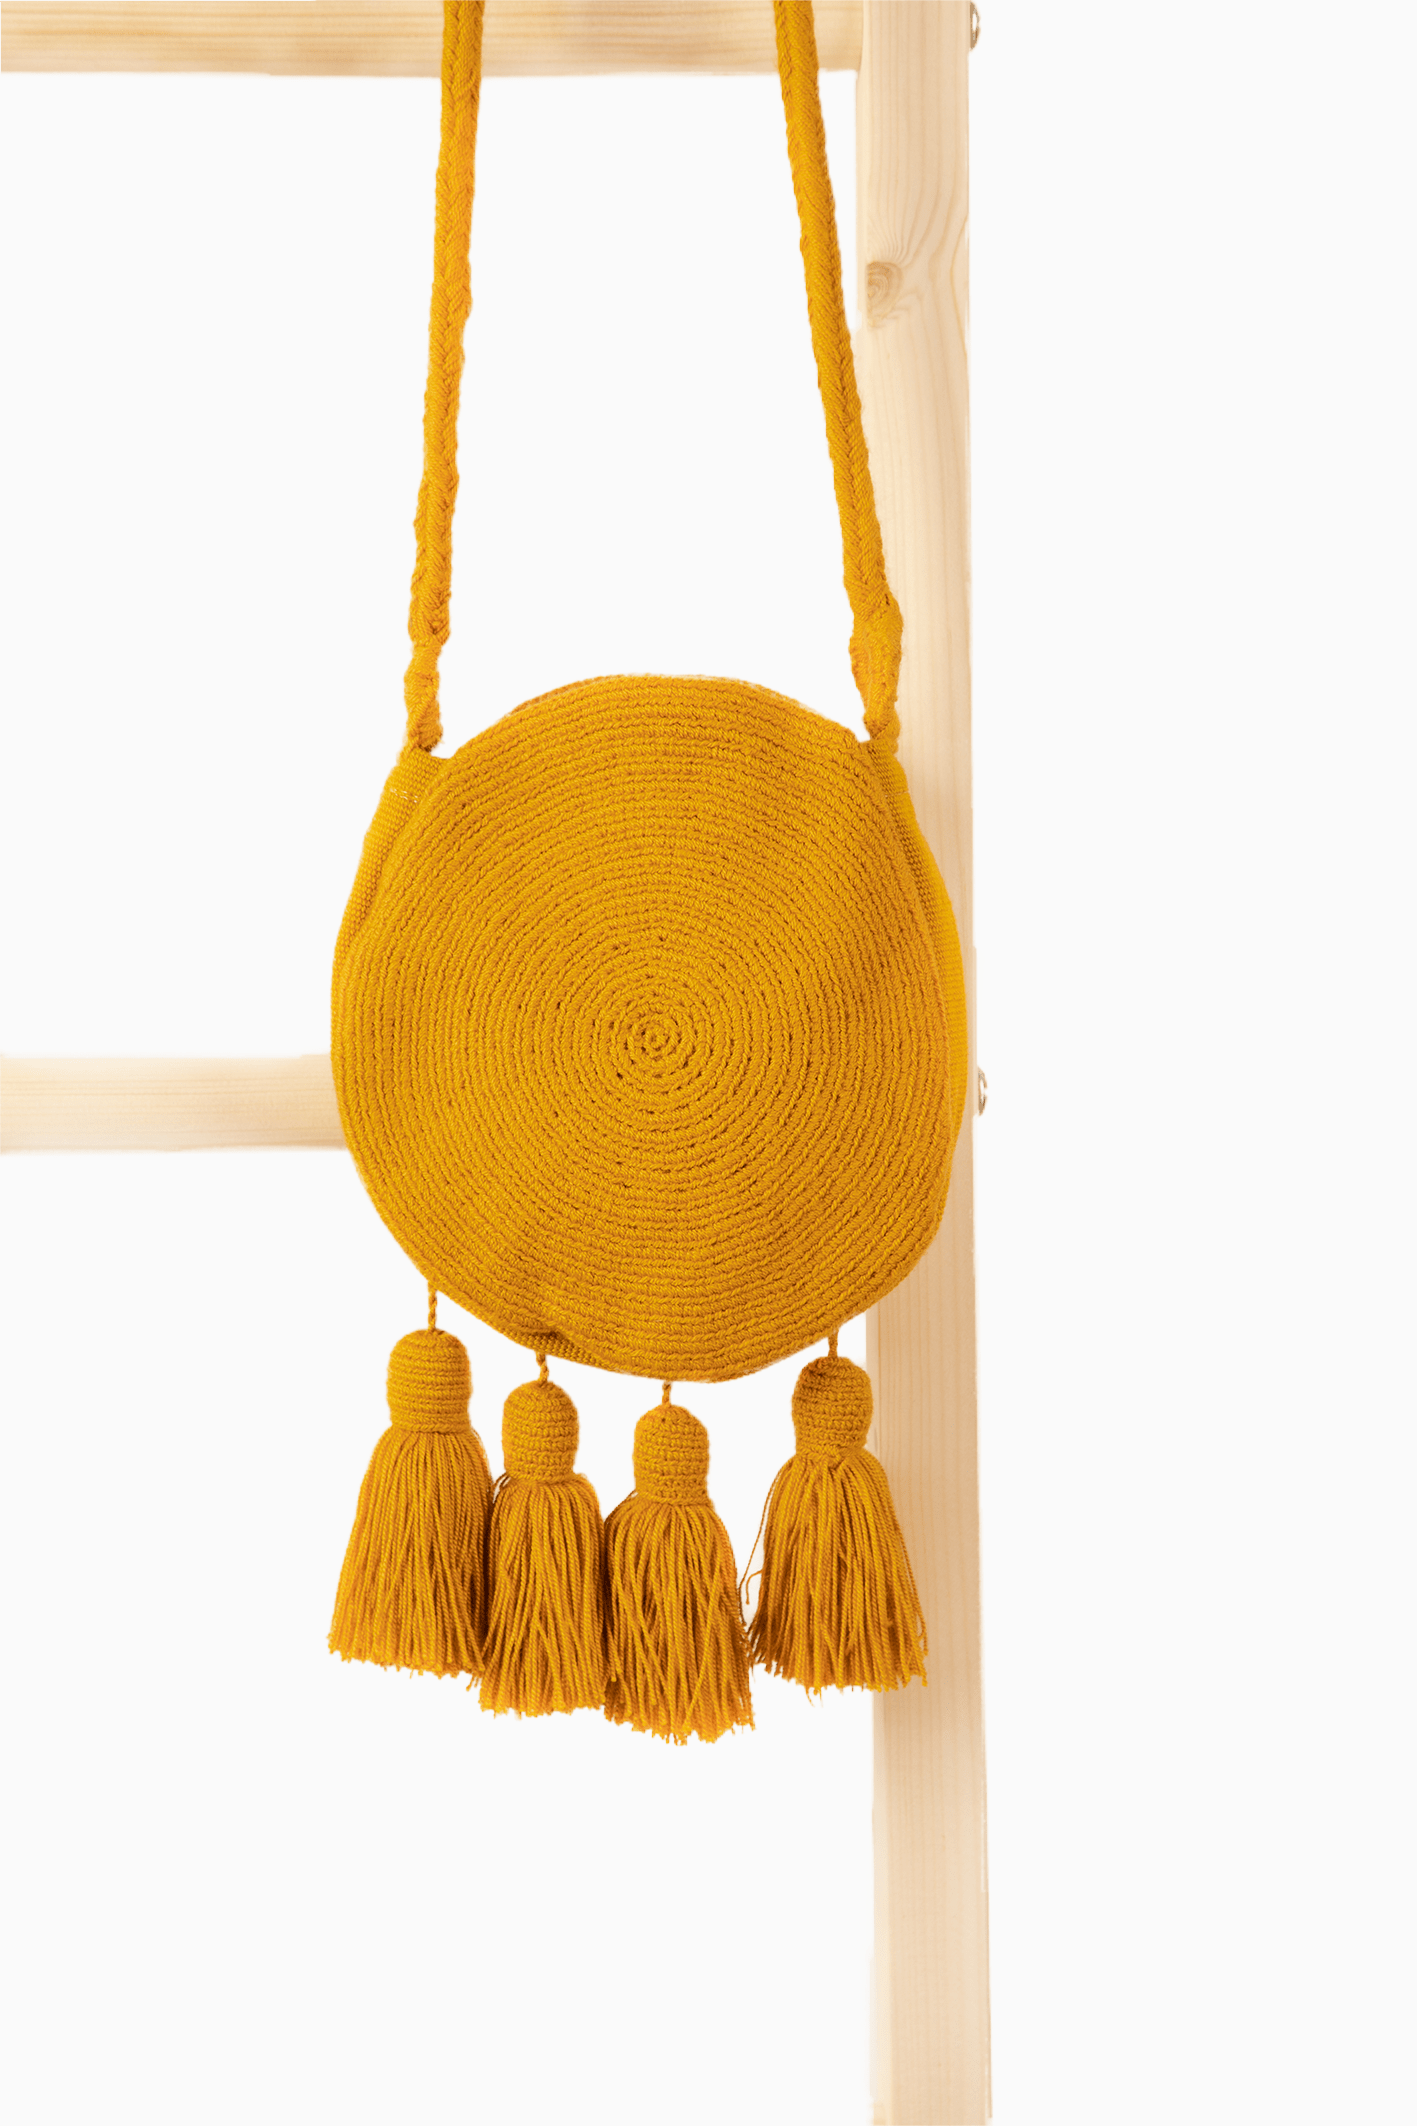 Wayuu Banjo Mini Sling - Mustard - Our Barehands